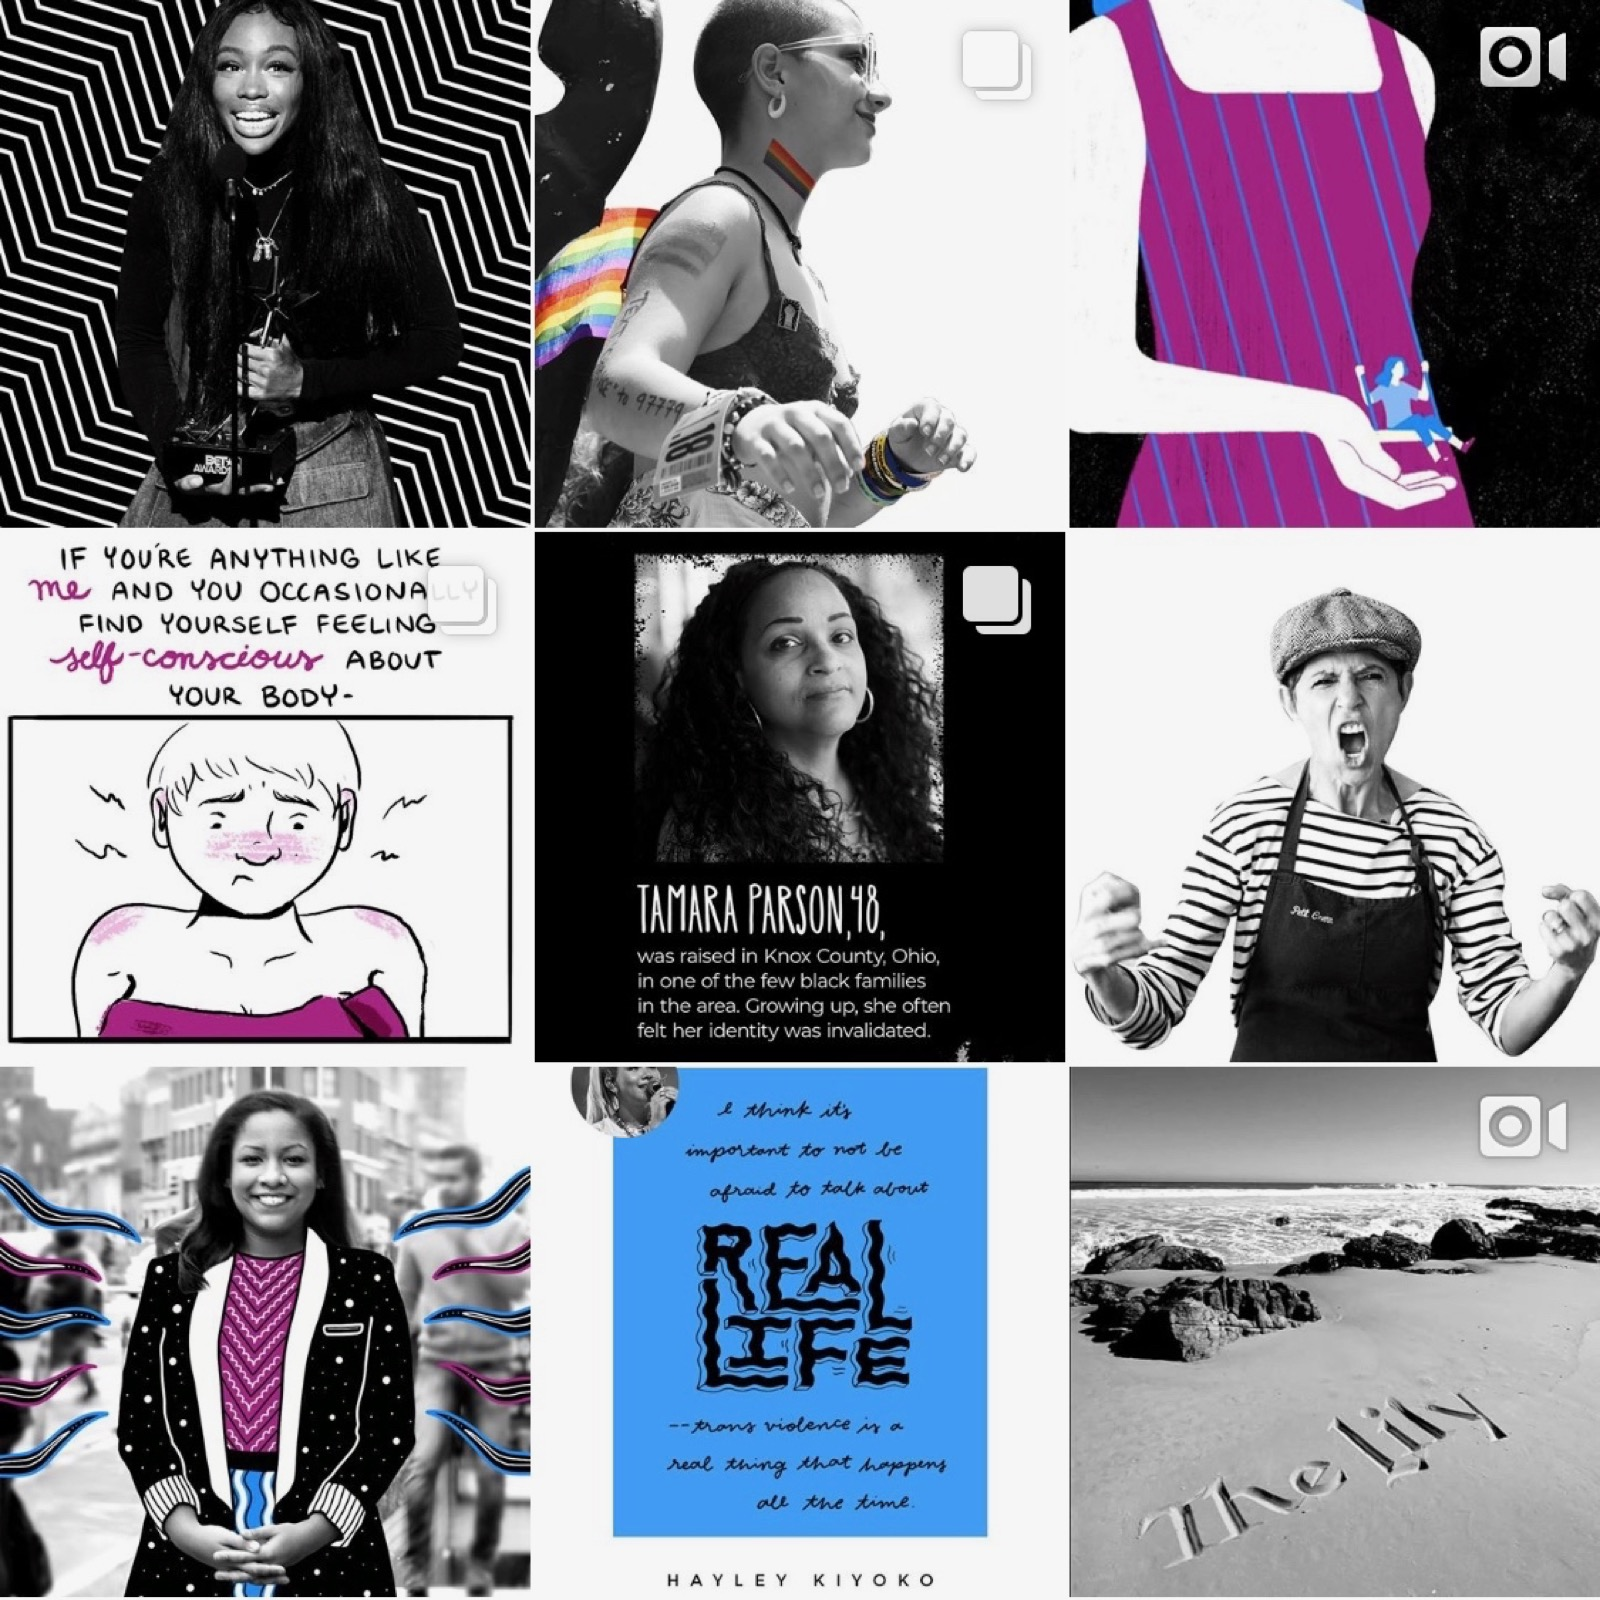 The Lily's Instagram grid, showing the clear black/white alternation